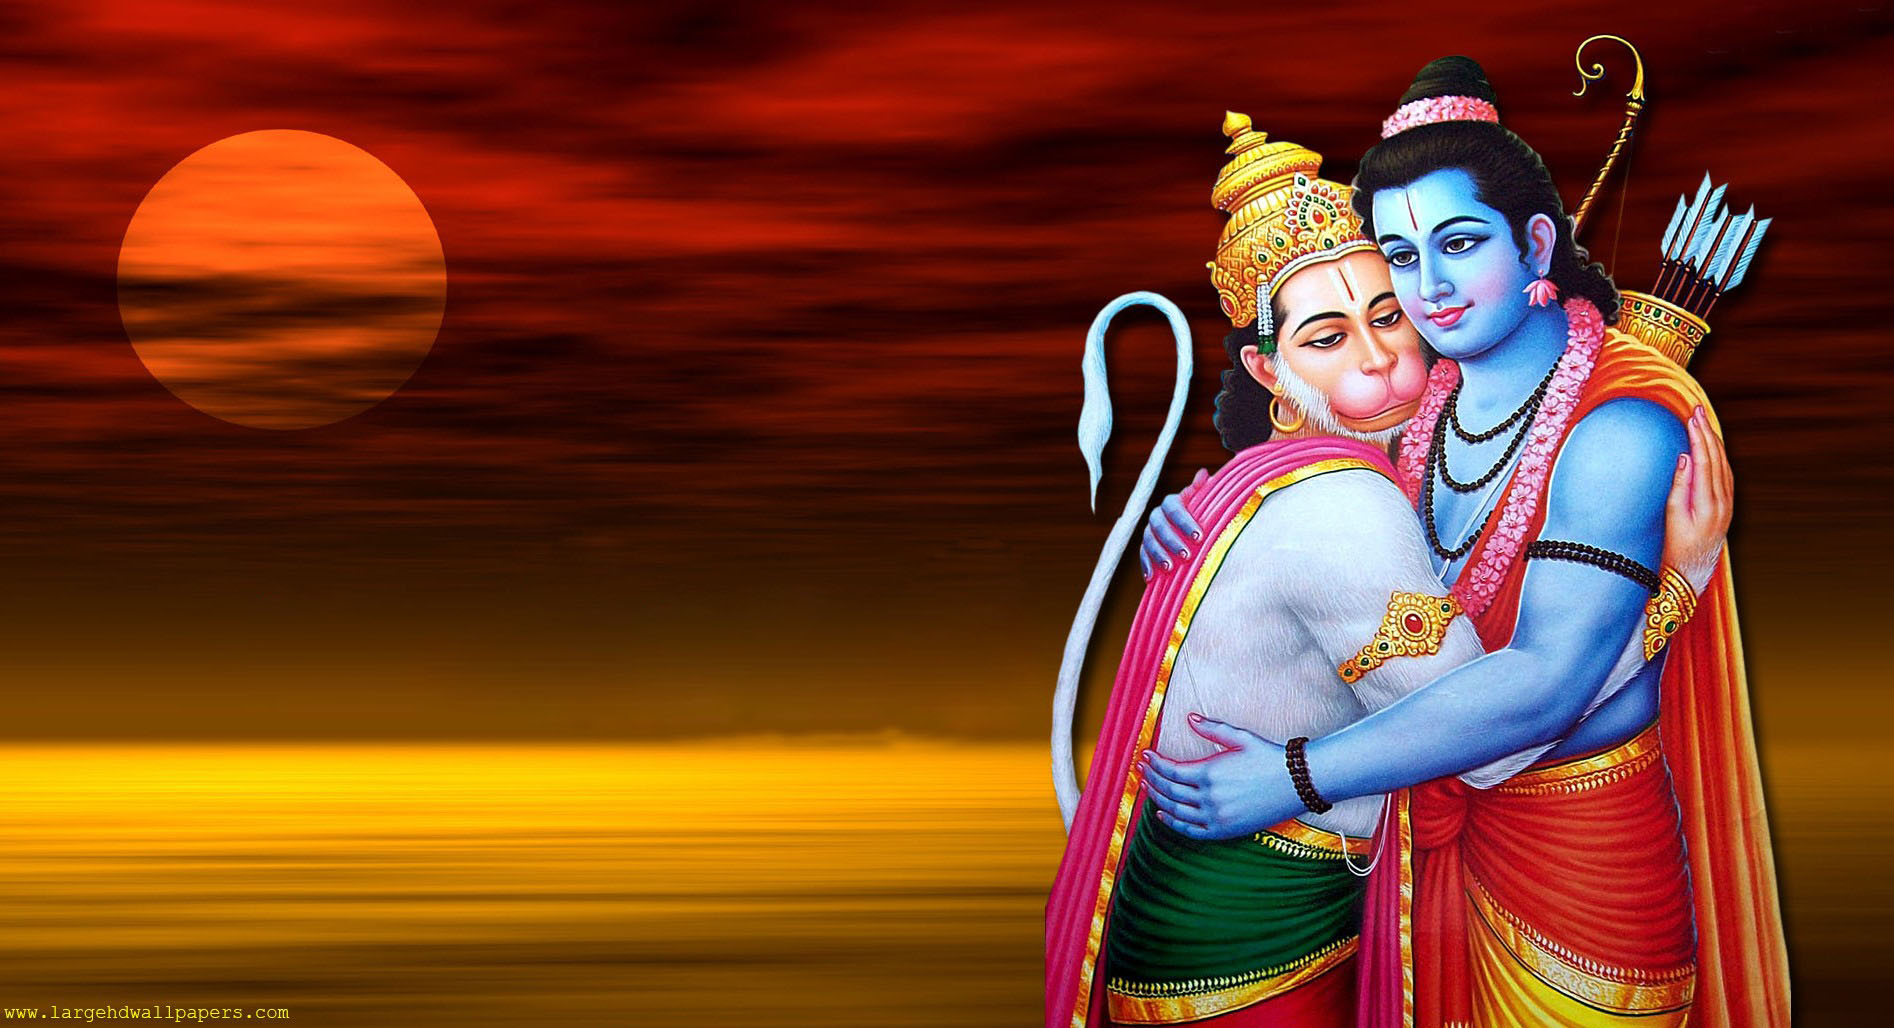 Download Free Hd Wallpapers Of Shree Ram Ramji